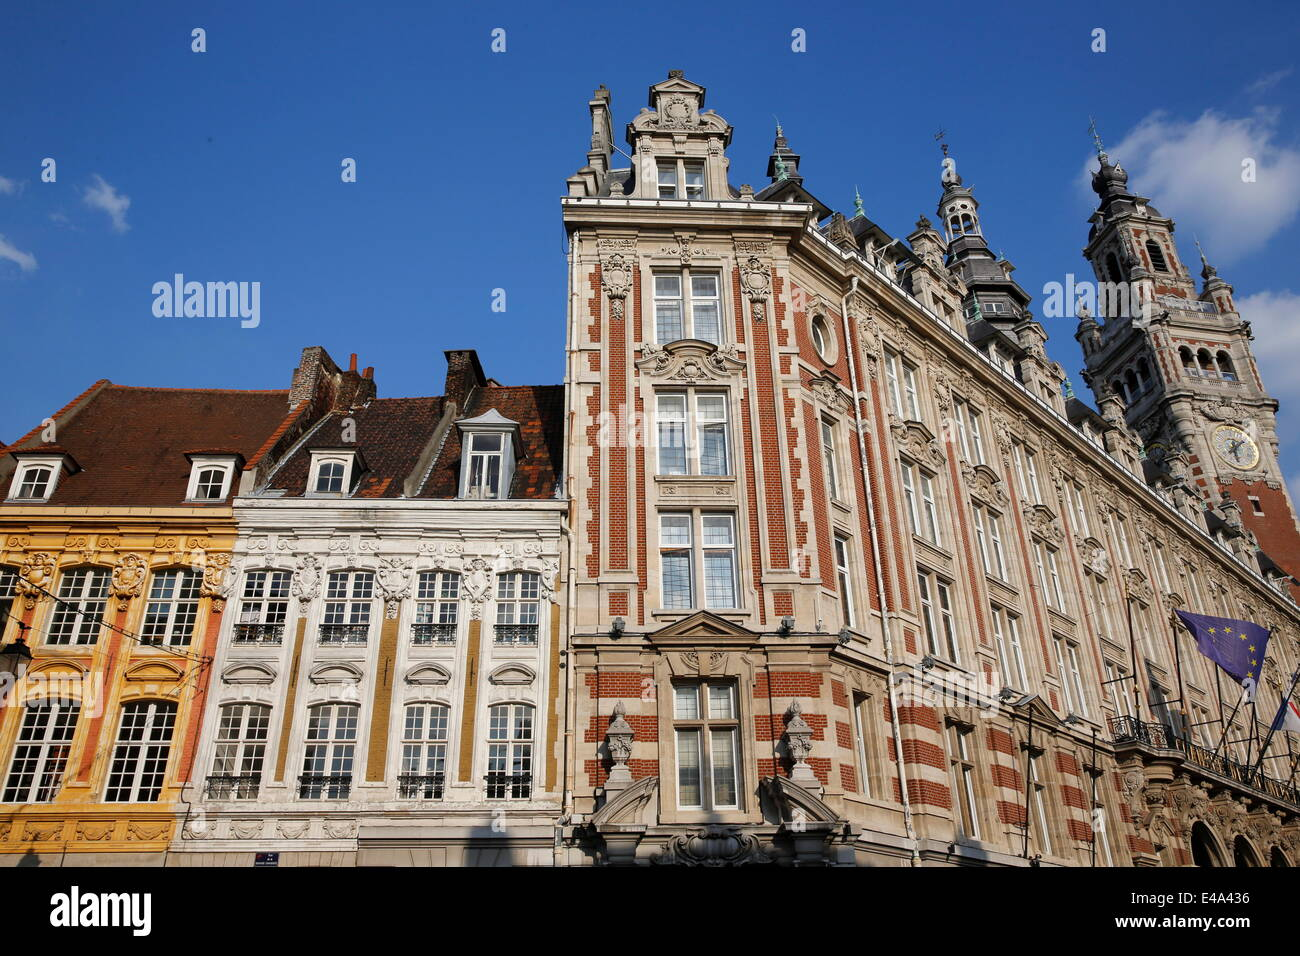 La Chambre de Commerce de Lille, Lille, Nord, France, Europe Photo Stock